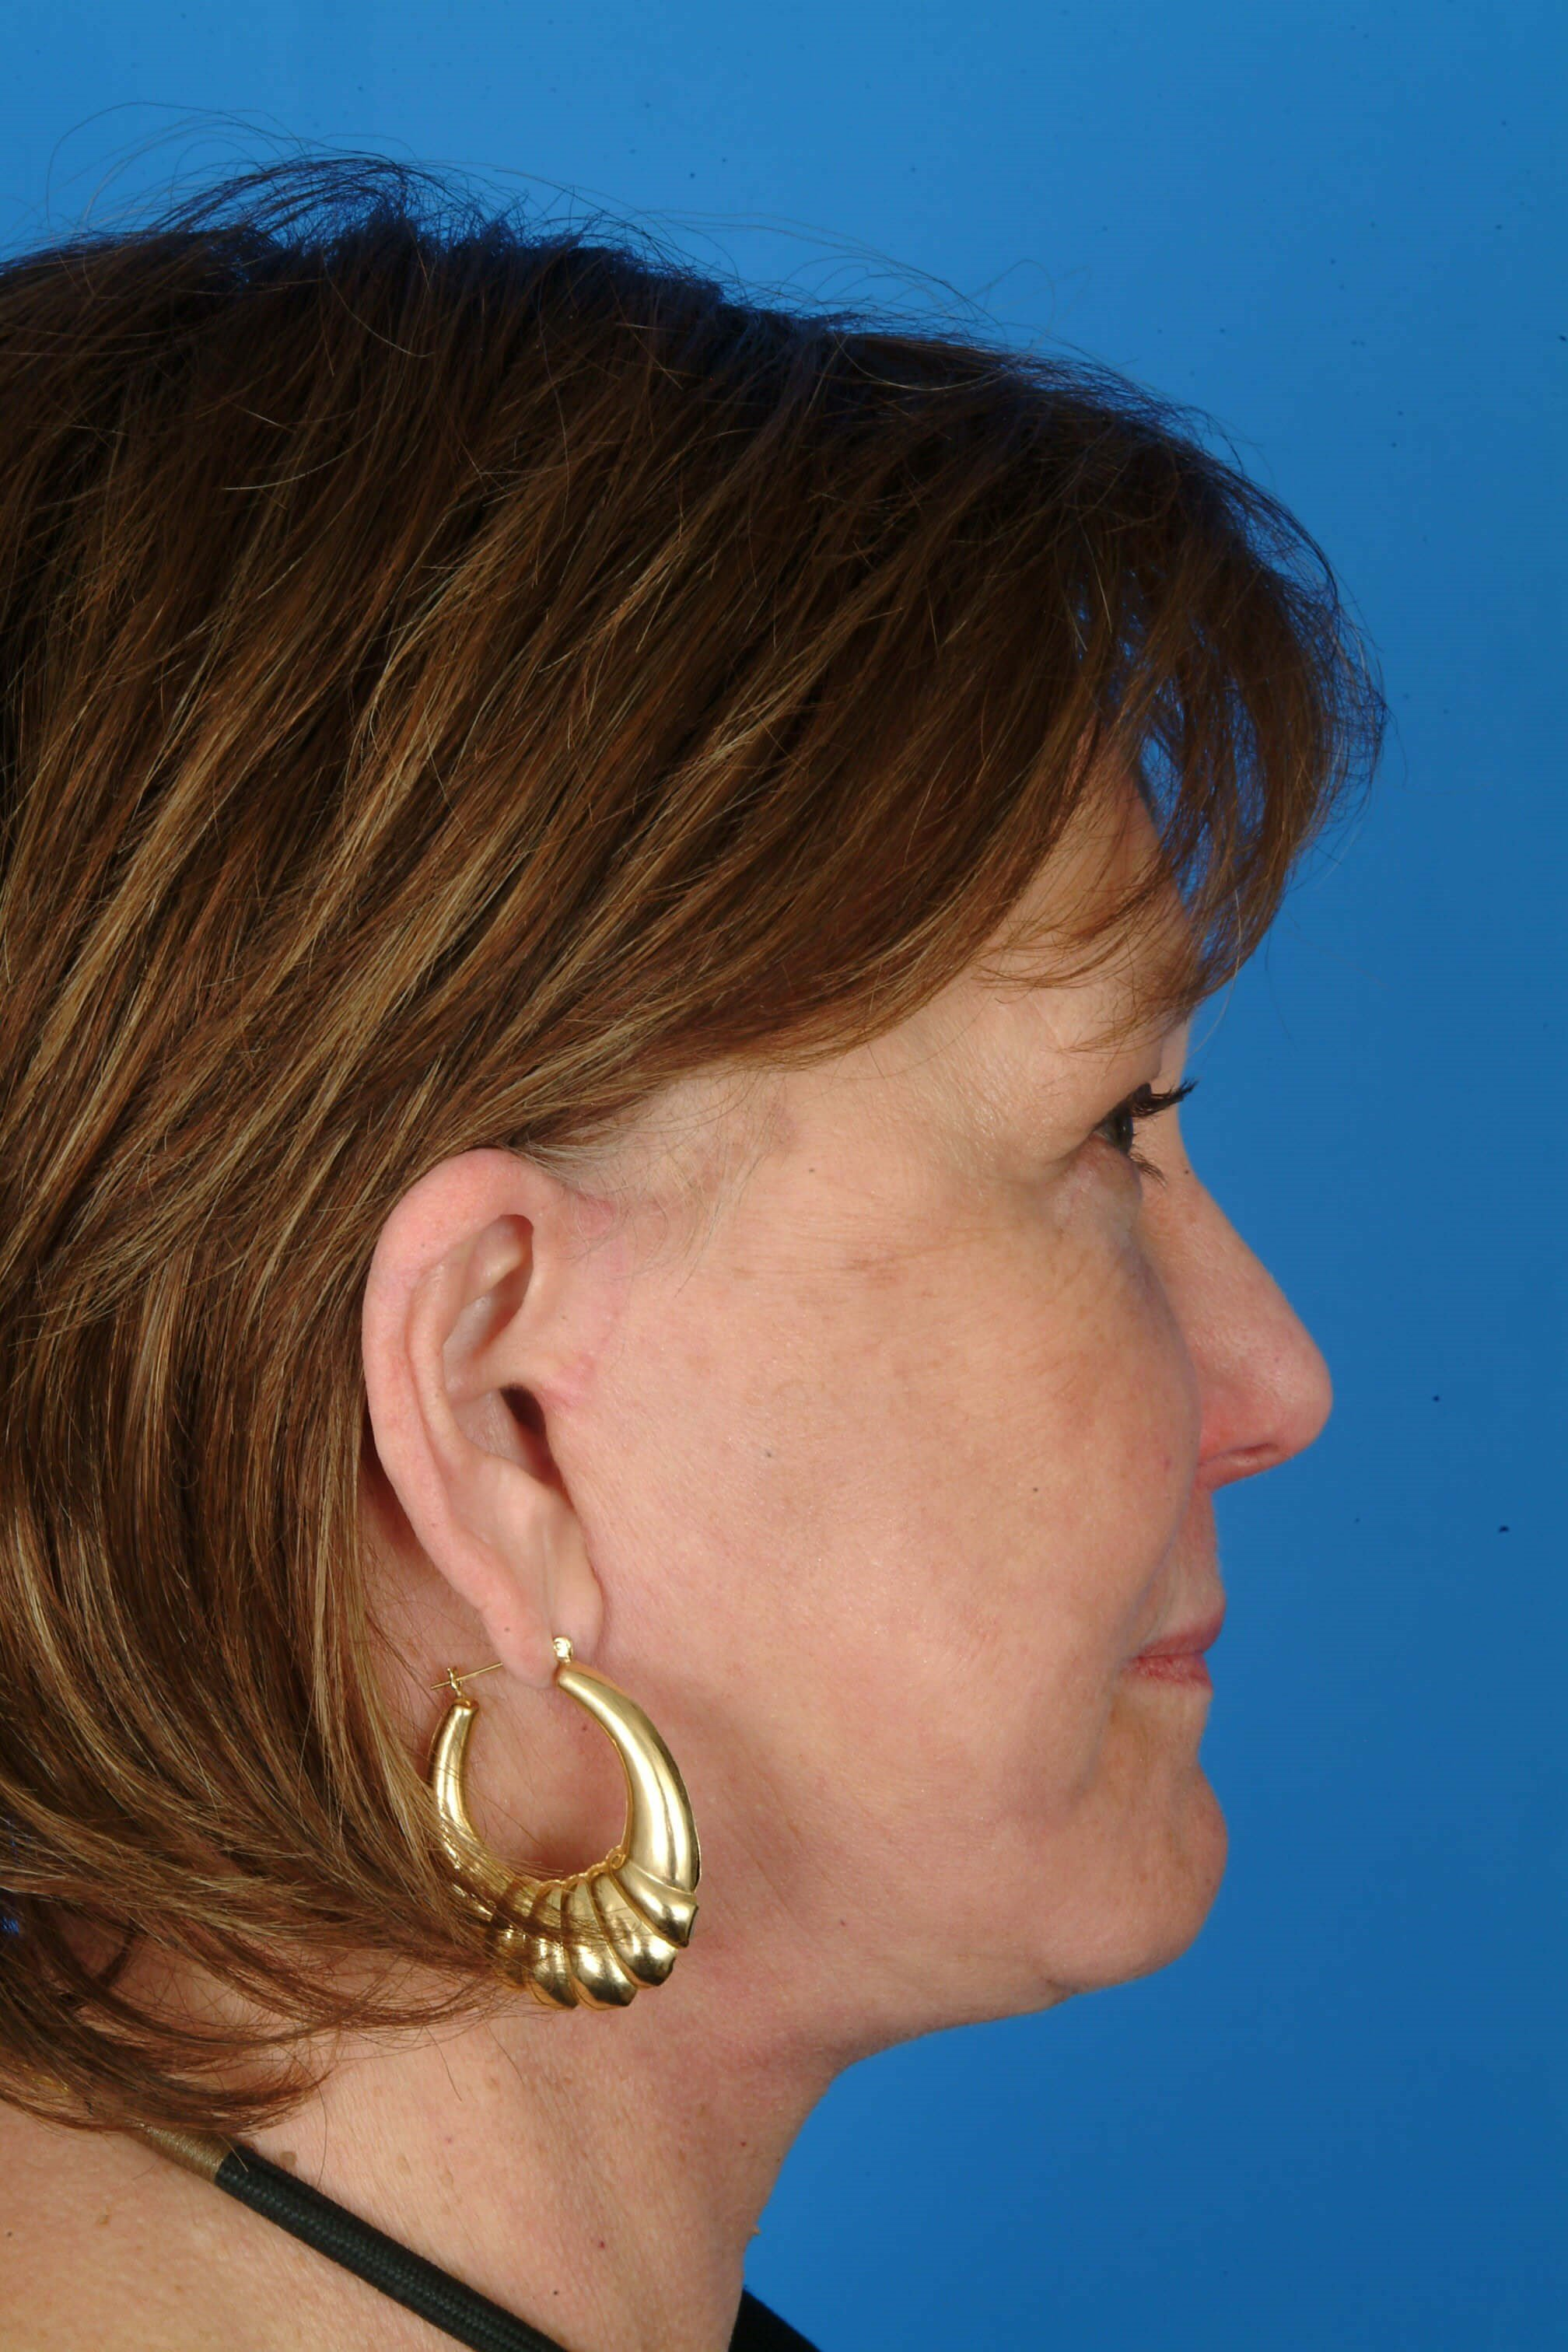 Side View 3 mos After Facelift, Browlift